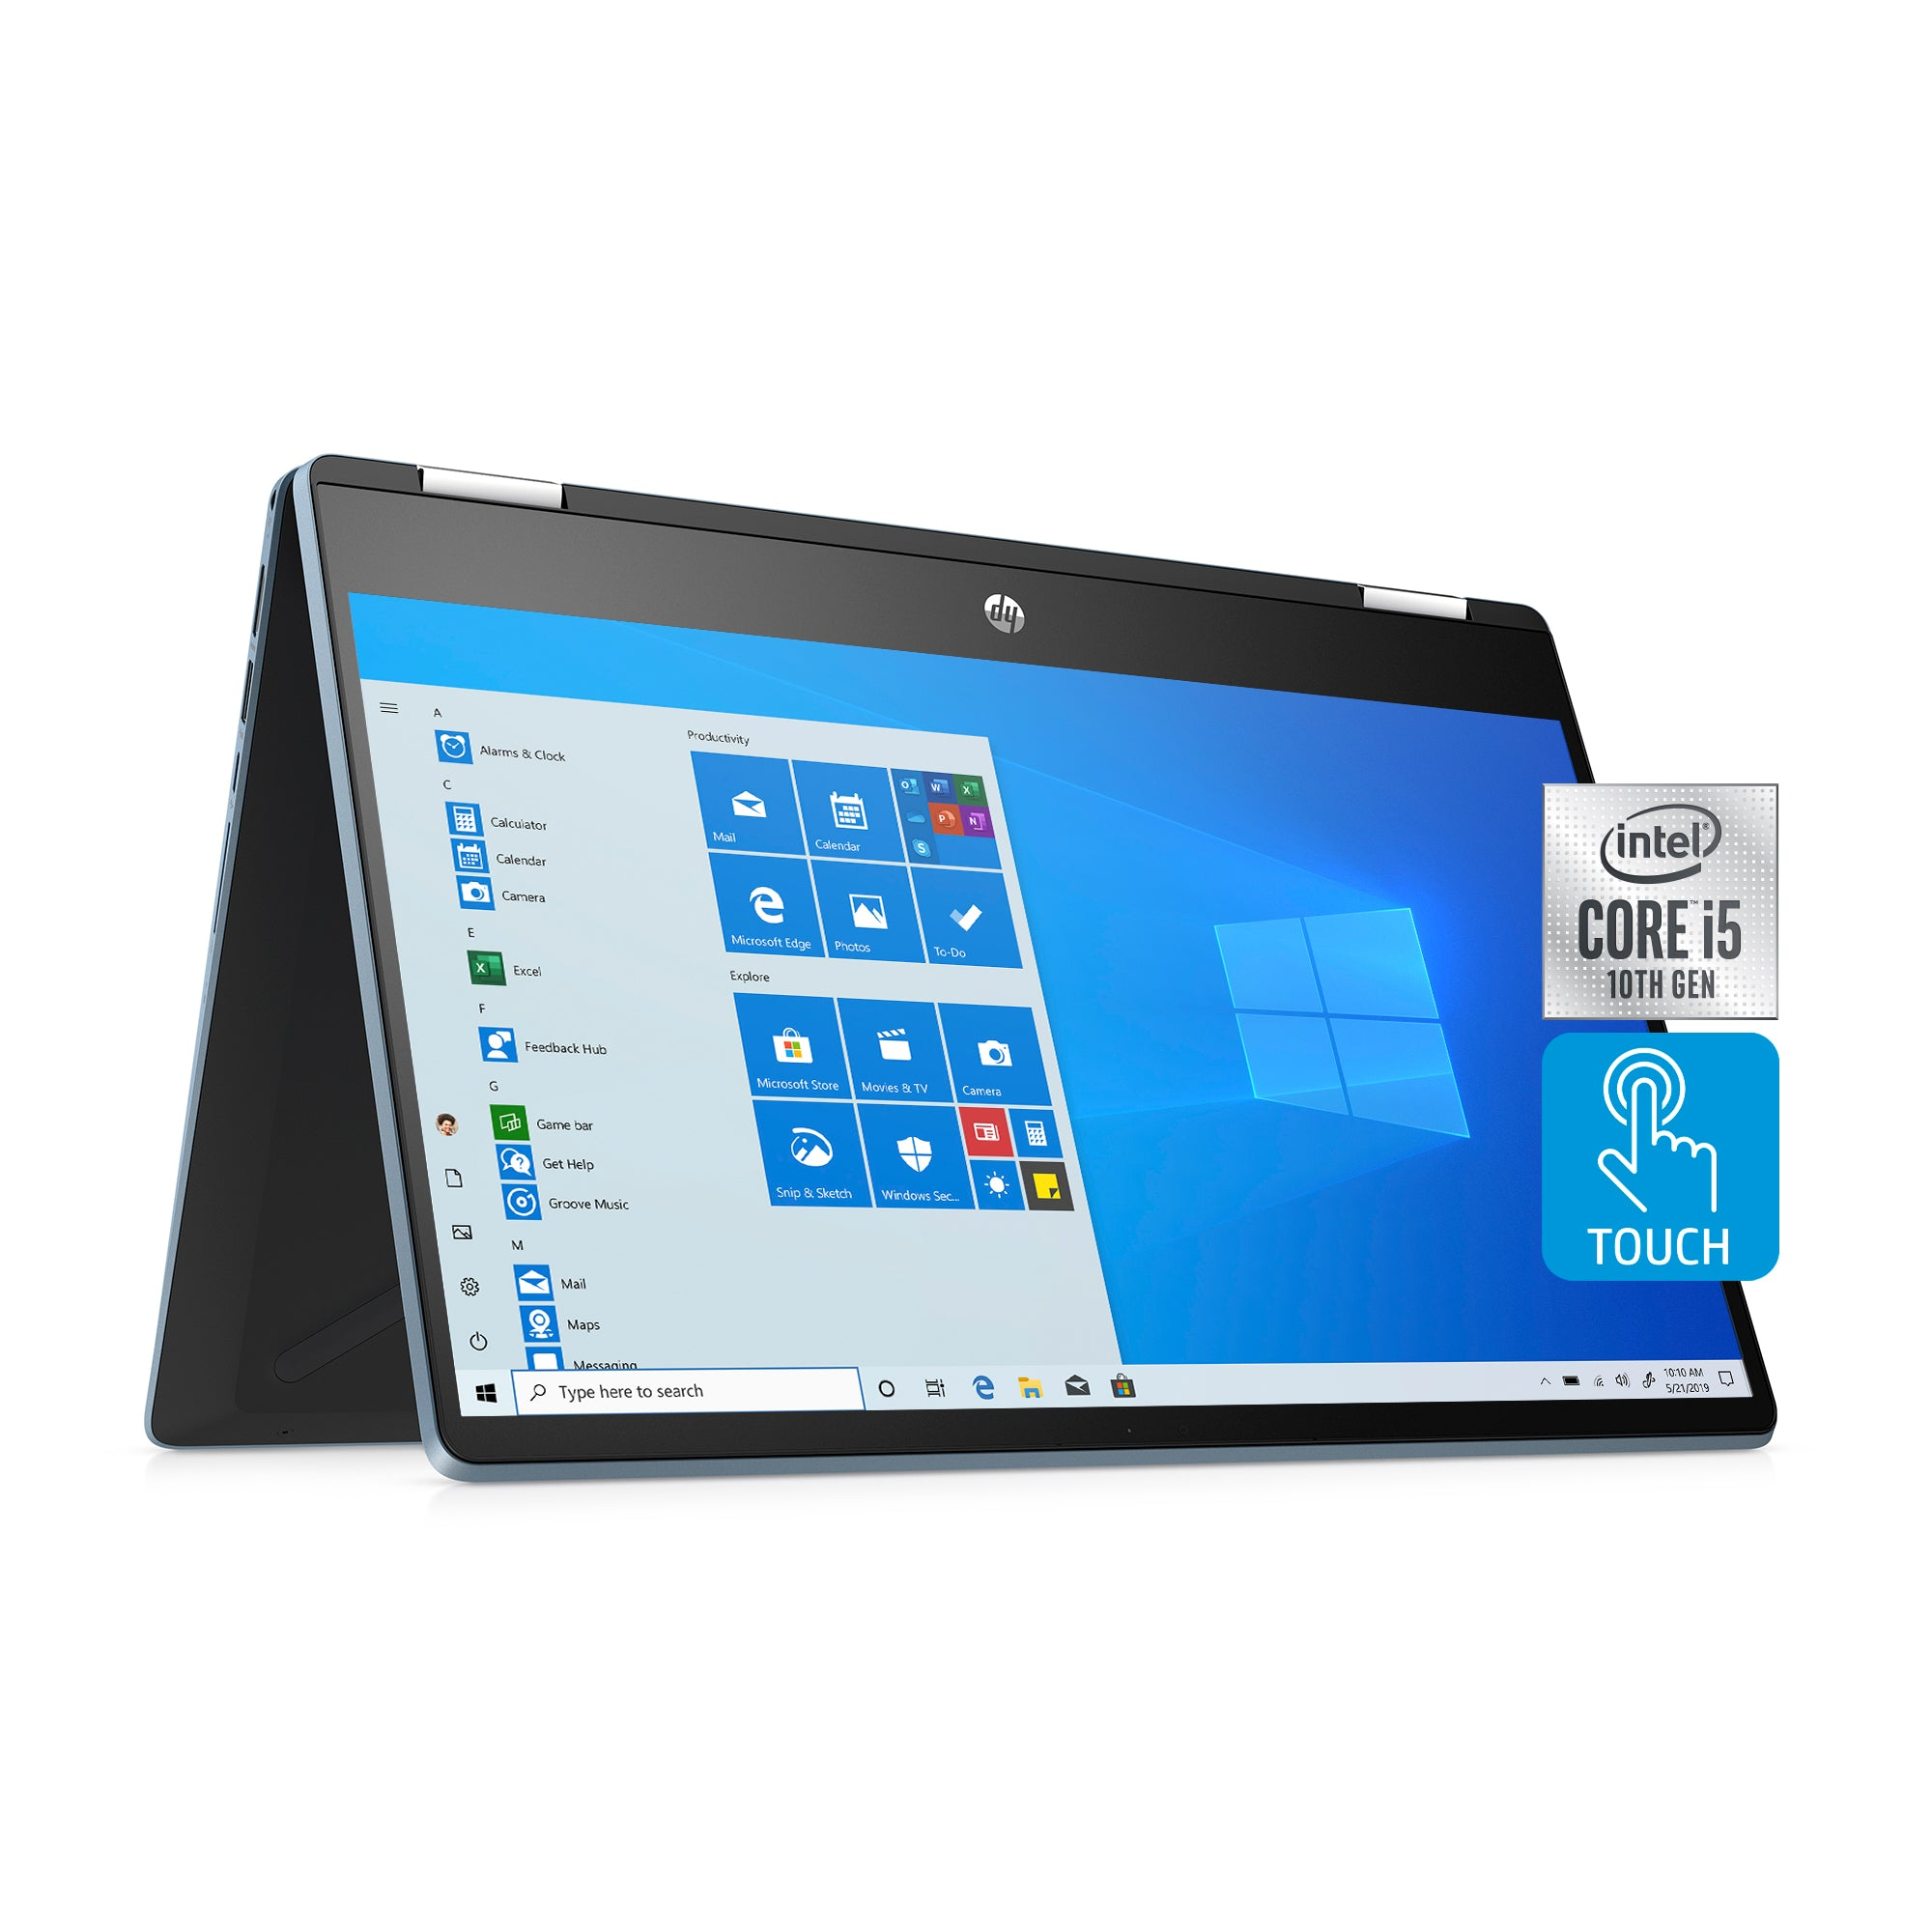 HP Pavilion x360 2-in-1 Touchscreen Laptop - 14